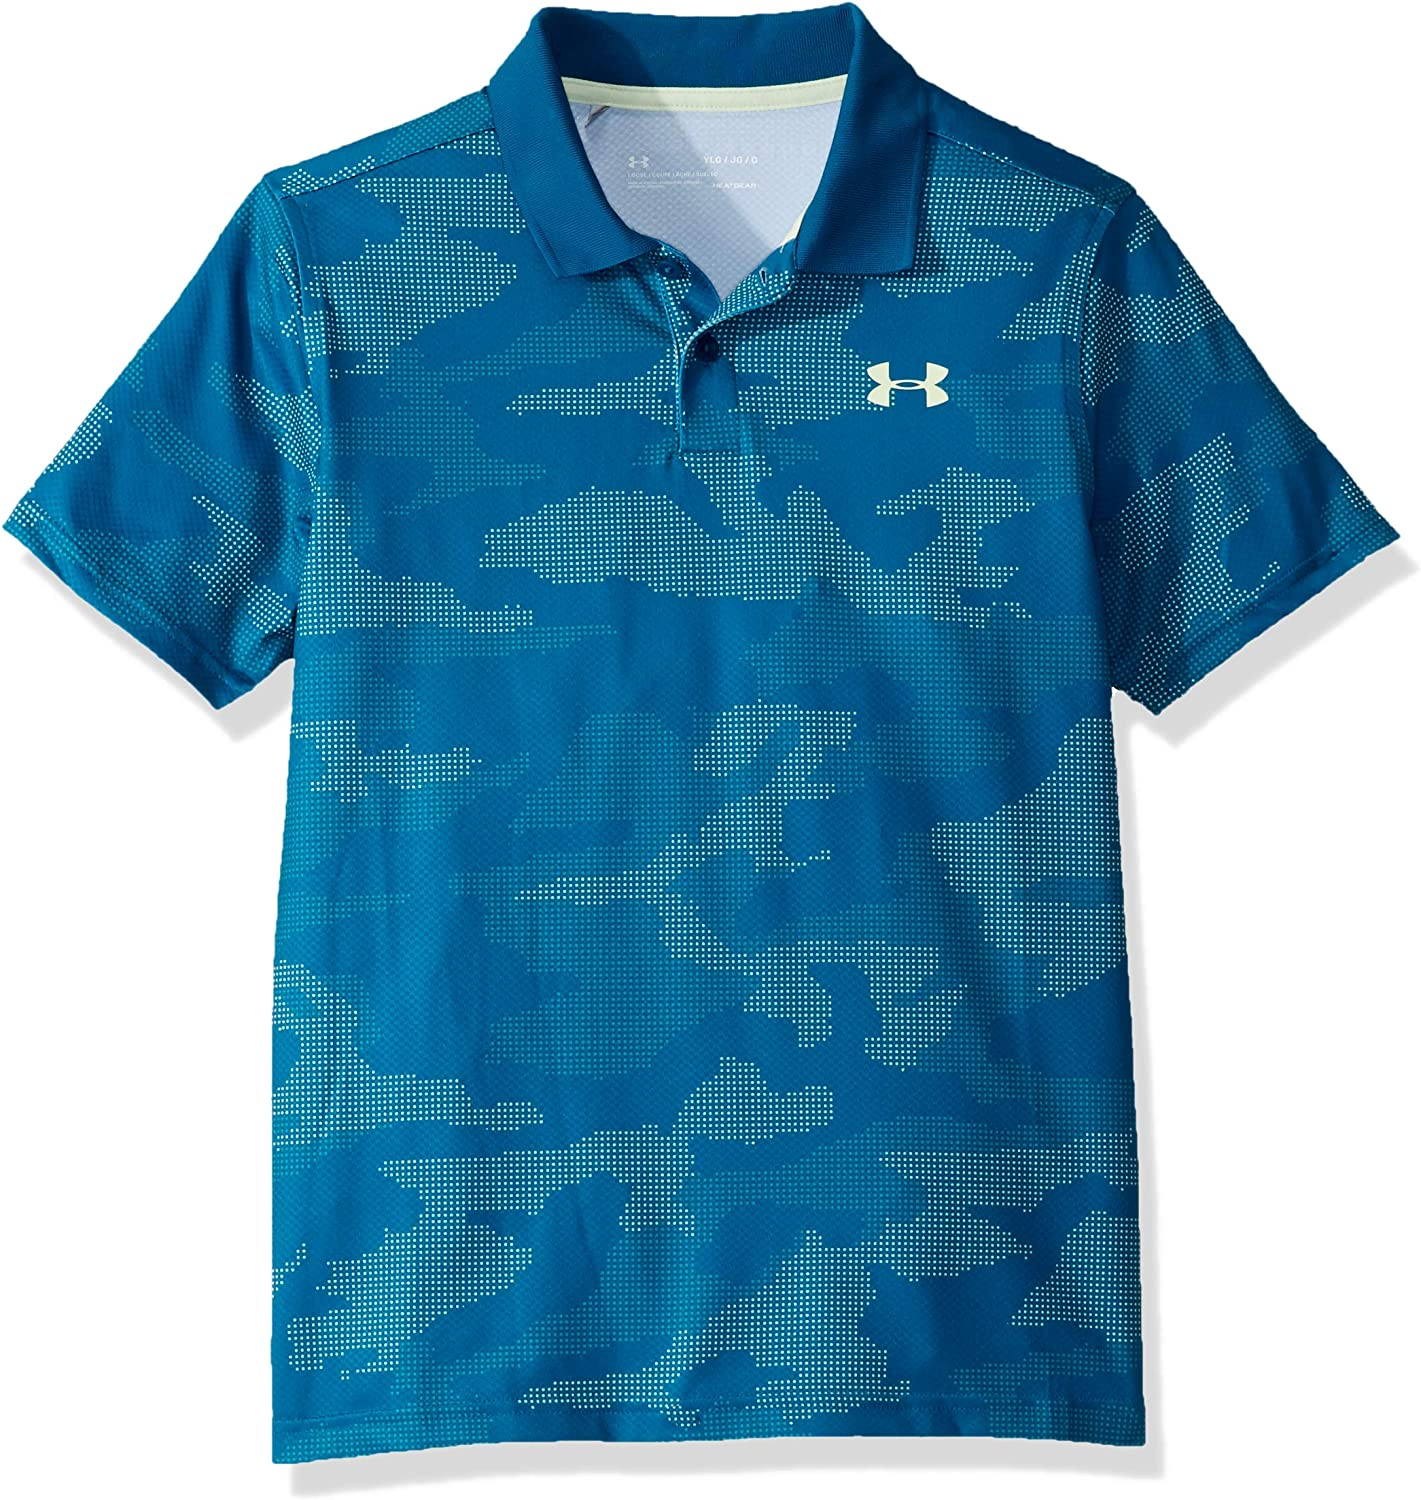 Under Armour Unisex Kids Performance Polo 2.0 Novelty Polo